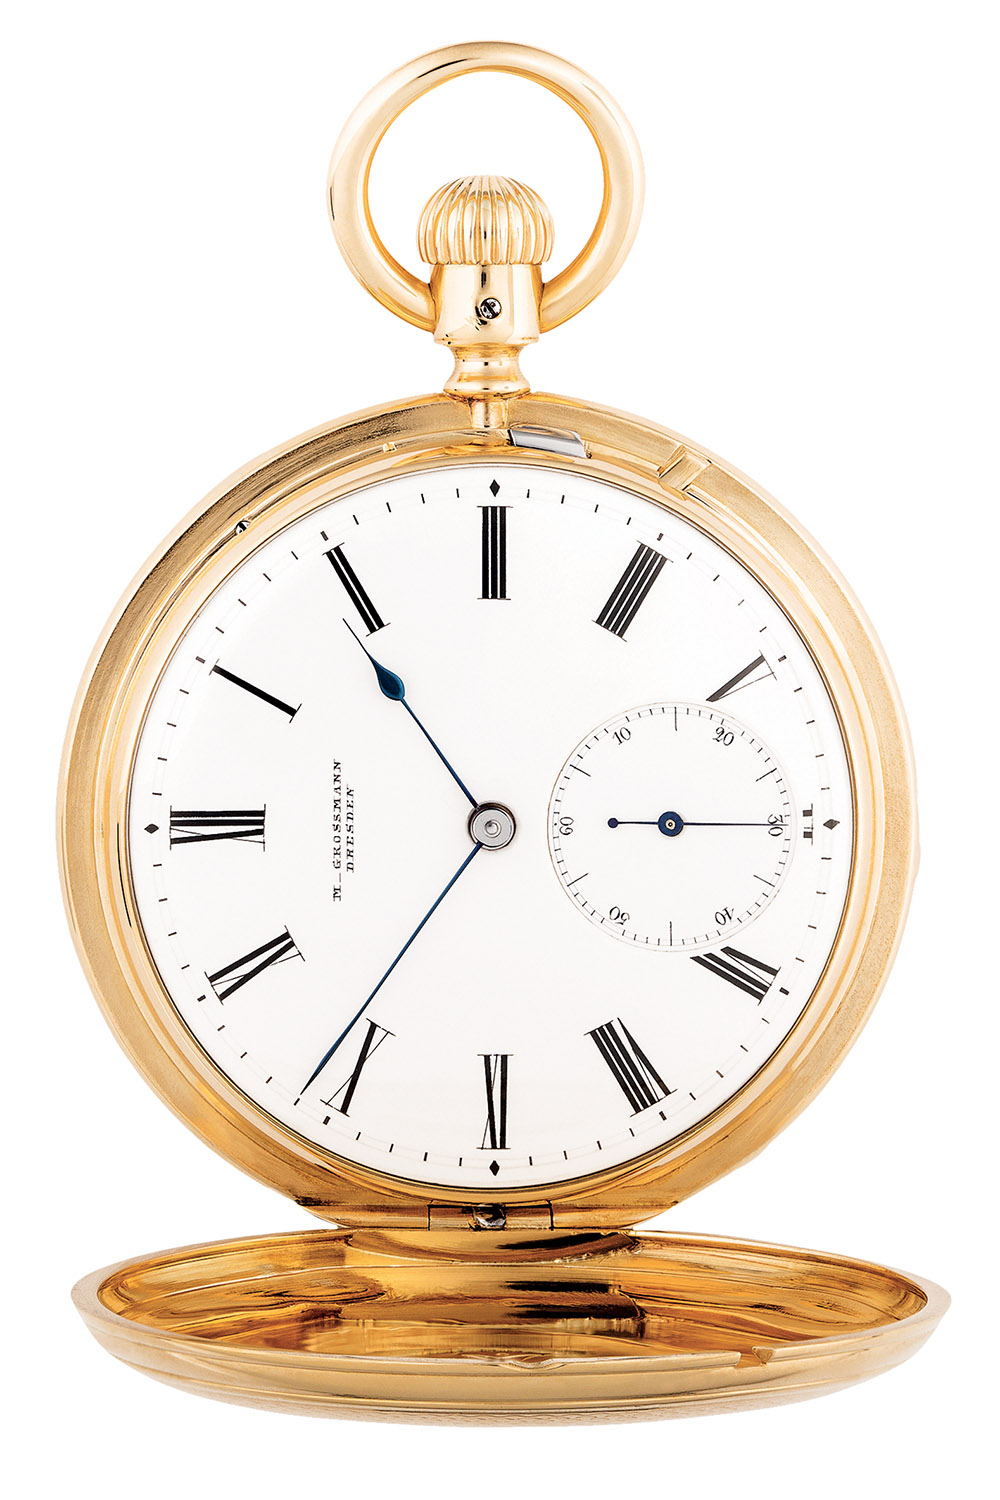 Moritz Grossmann 10th anniversary online auction Christies - 7